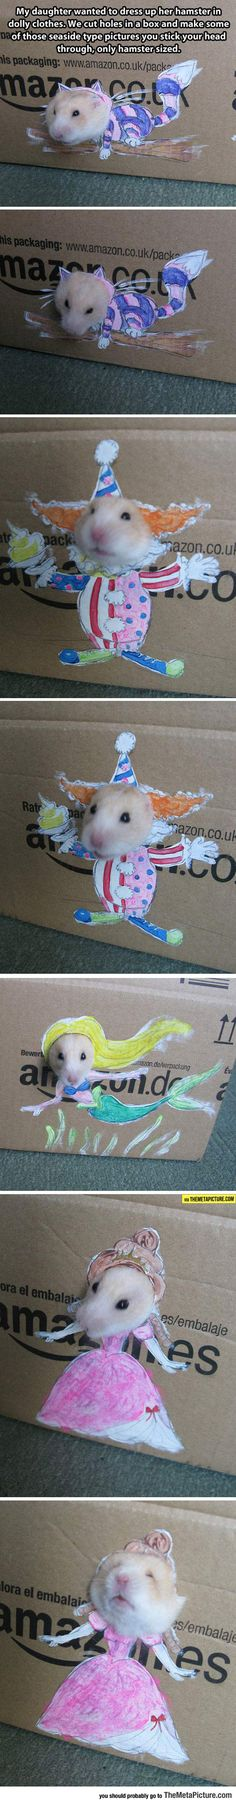 "A great idea for ""dressing"" hamsters! You could go all out and do backgrounds, etc. Very cute."